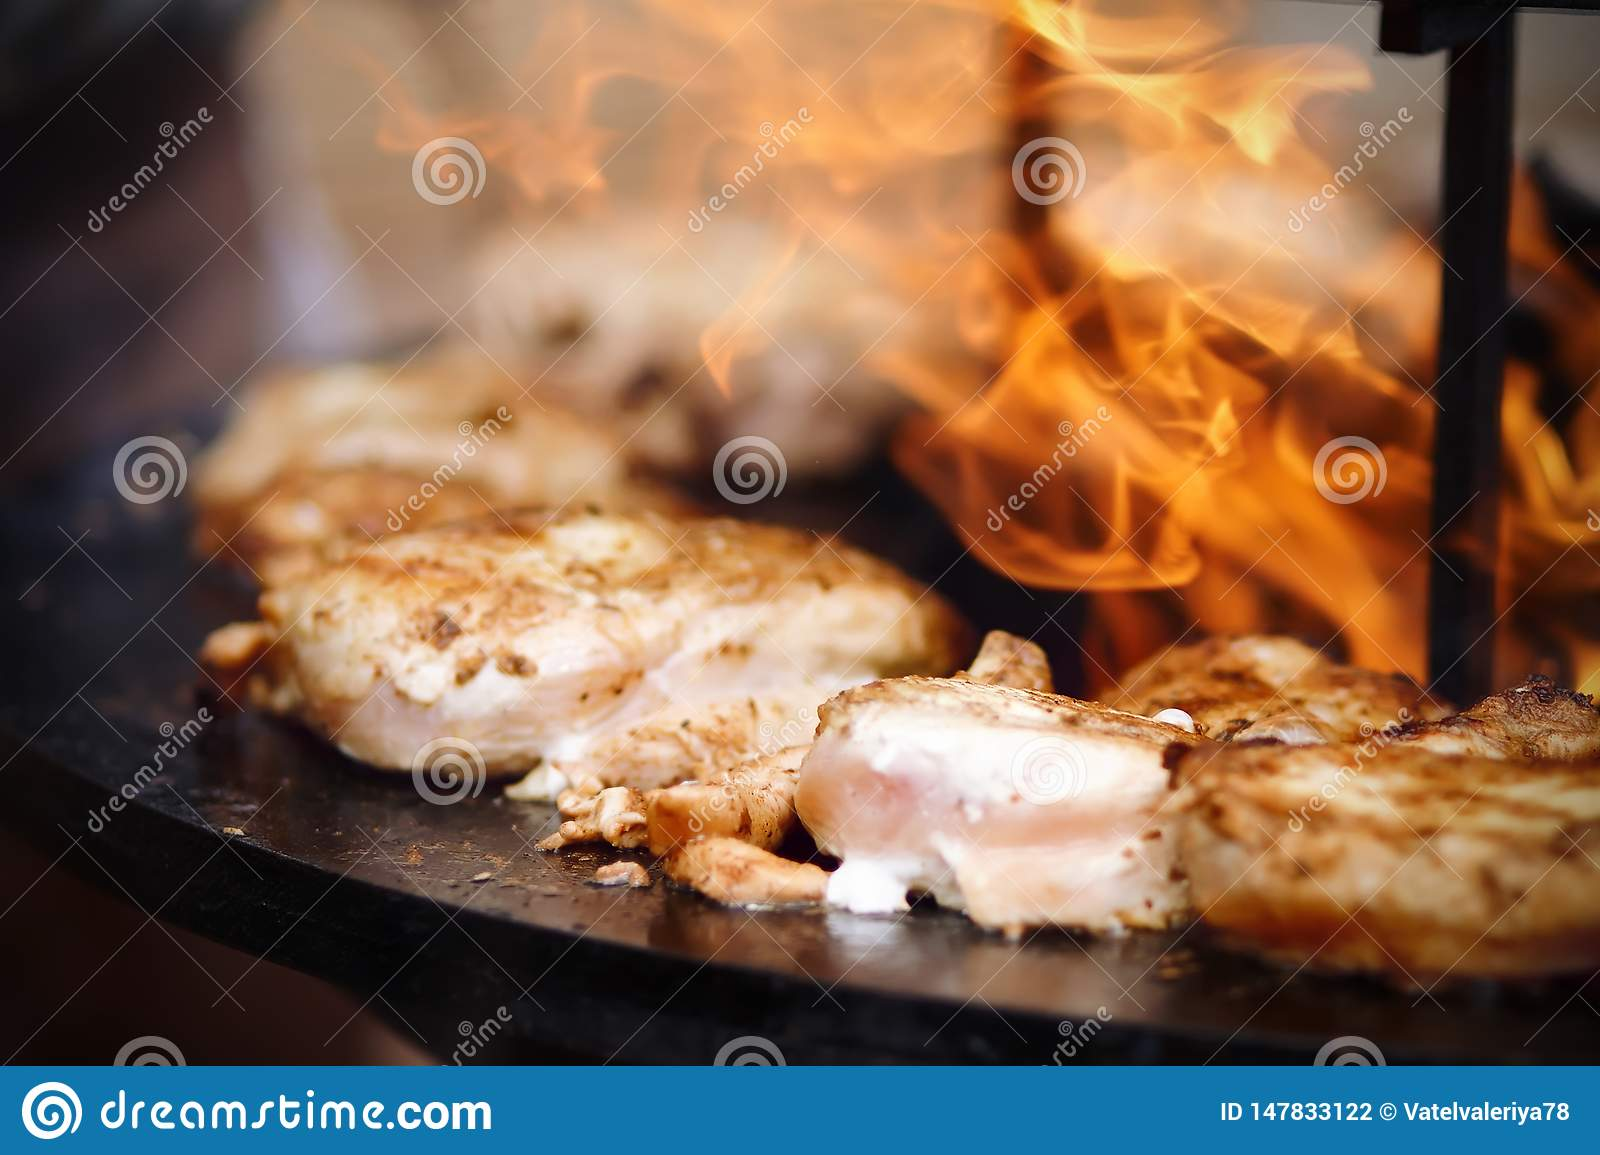 Pieces of chicken are fried on an open fire in the outdoor